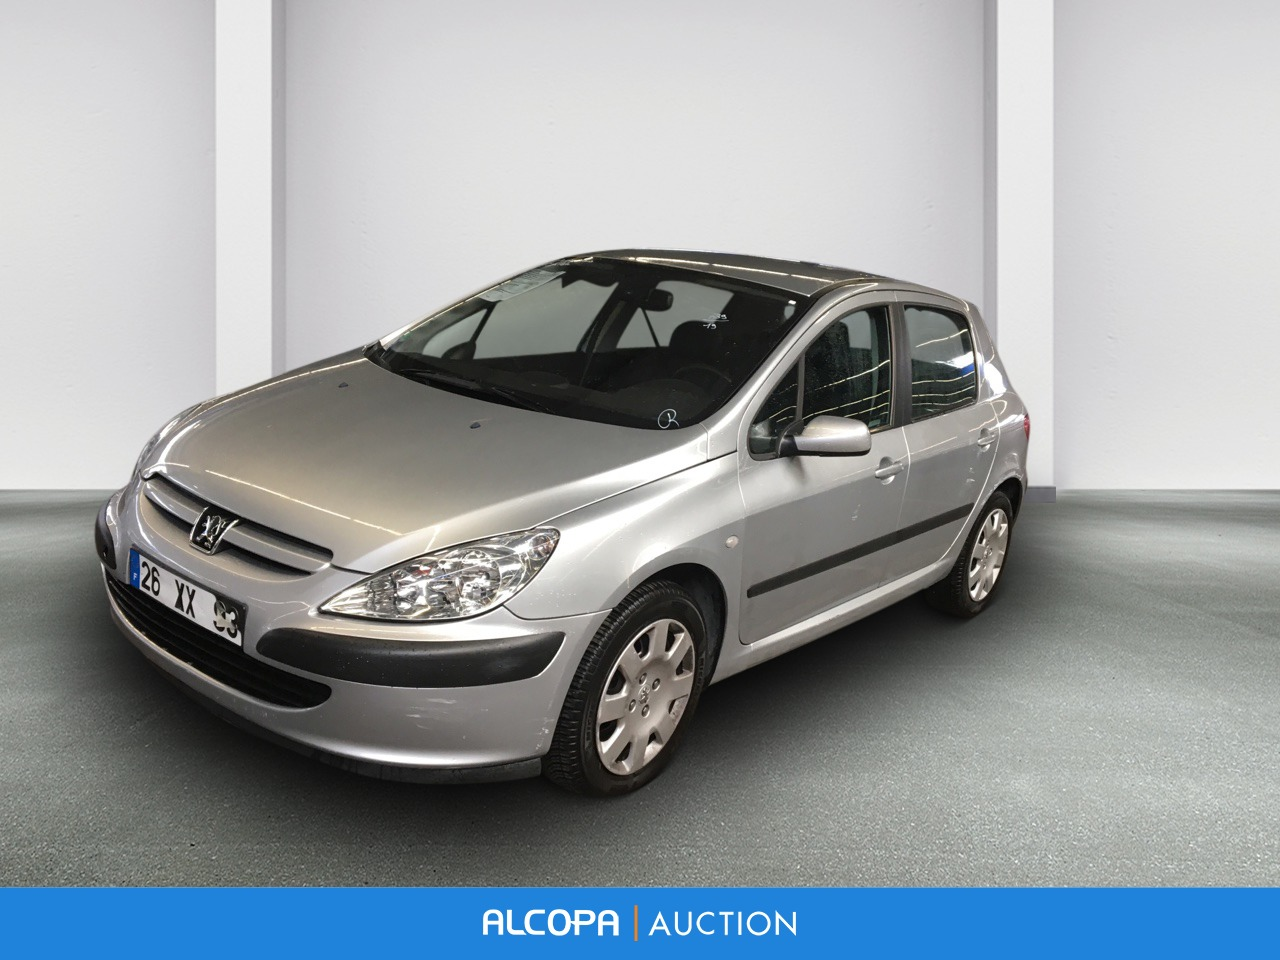 peugeot 307 307 2 0 hdi 110 xt navtech on board beauvais alcopa auction. Black Bedroom Furniture Sets. Home Design Ideas